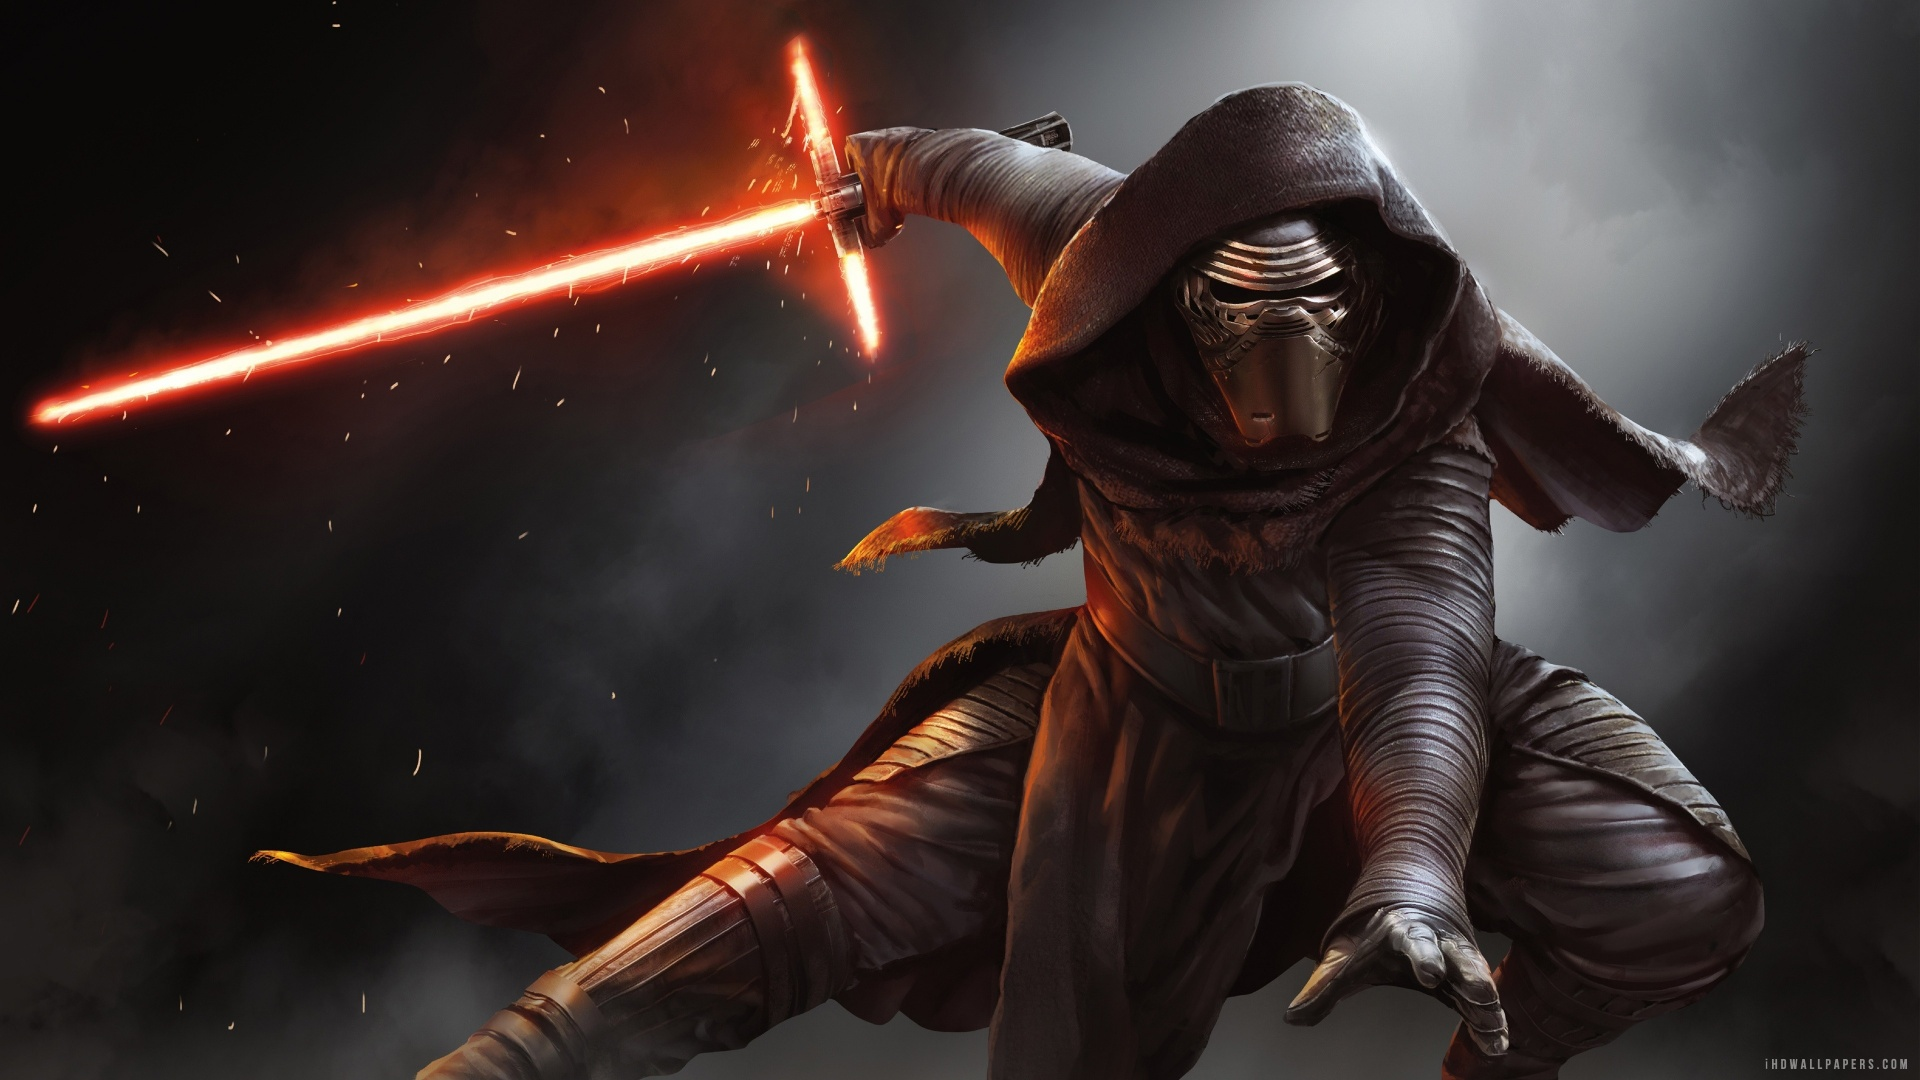 Kylo Ren HD Wallpaper   iHD Wallpapers 1920x1080